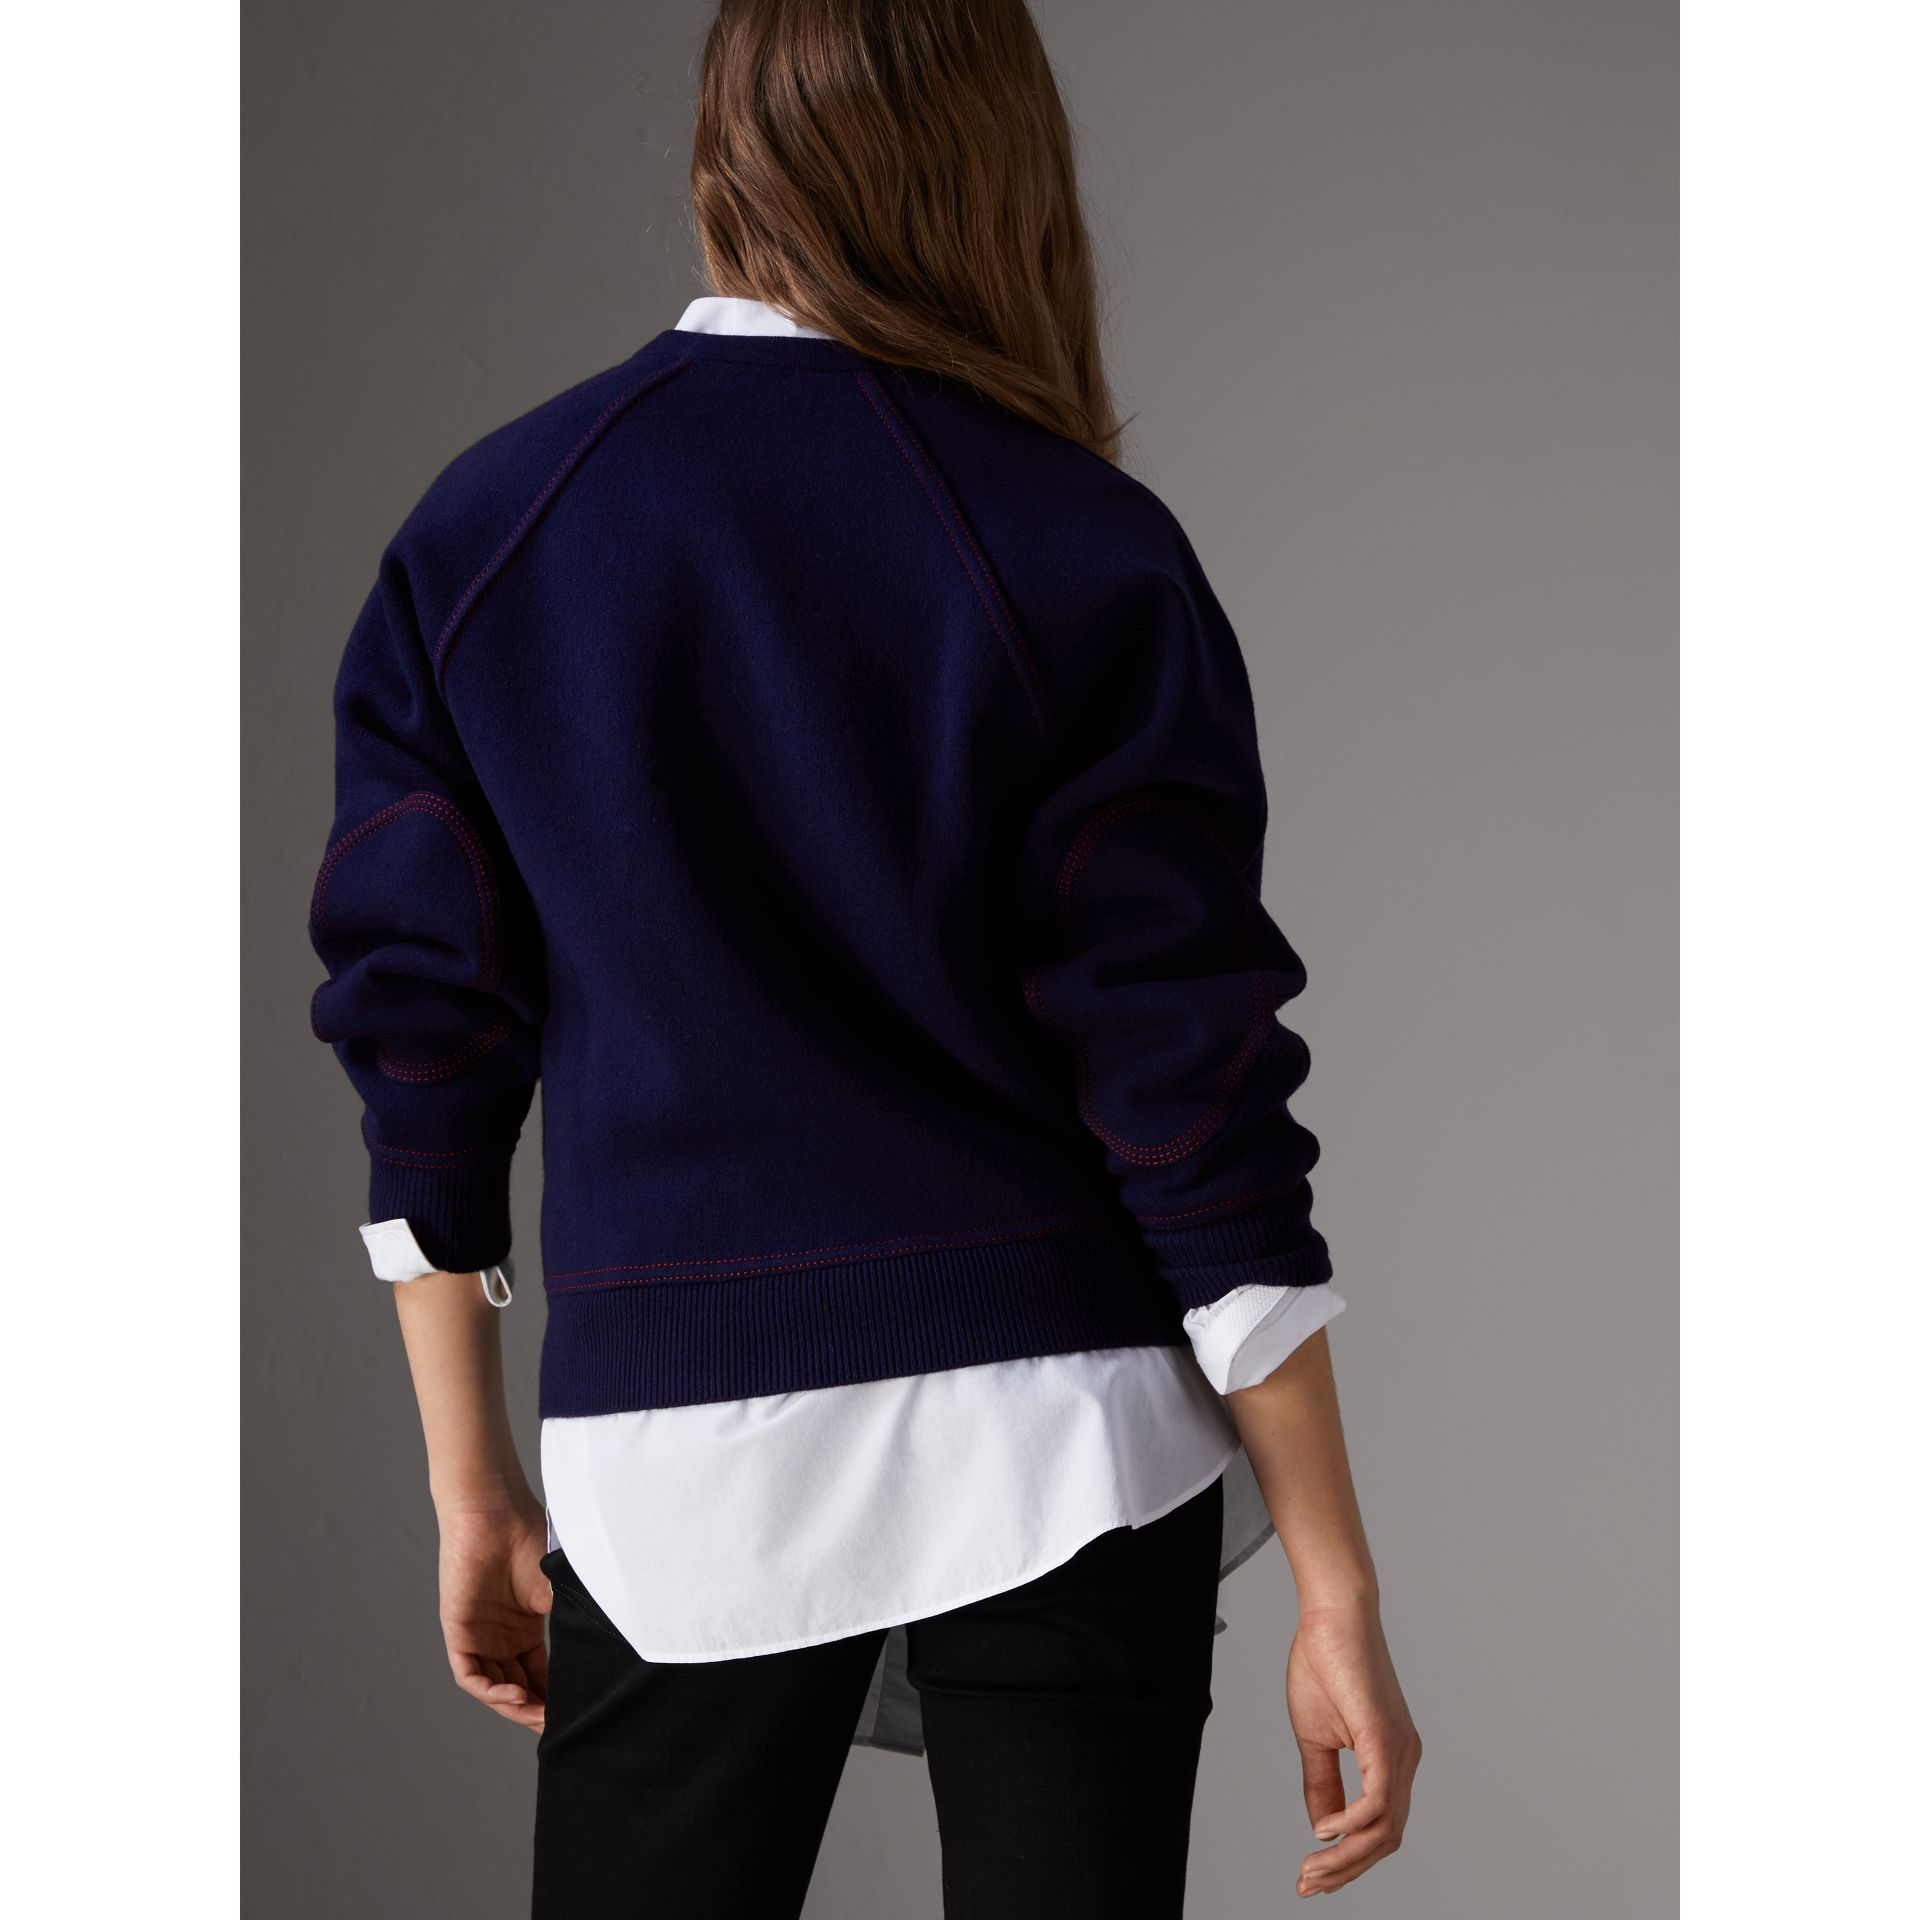 Topstitch Detail Wool Cashmere Blend Sweater in Navy - Women | Burberry - gallery image 3